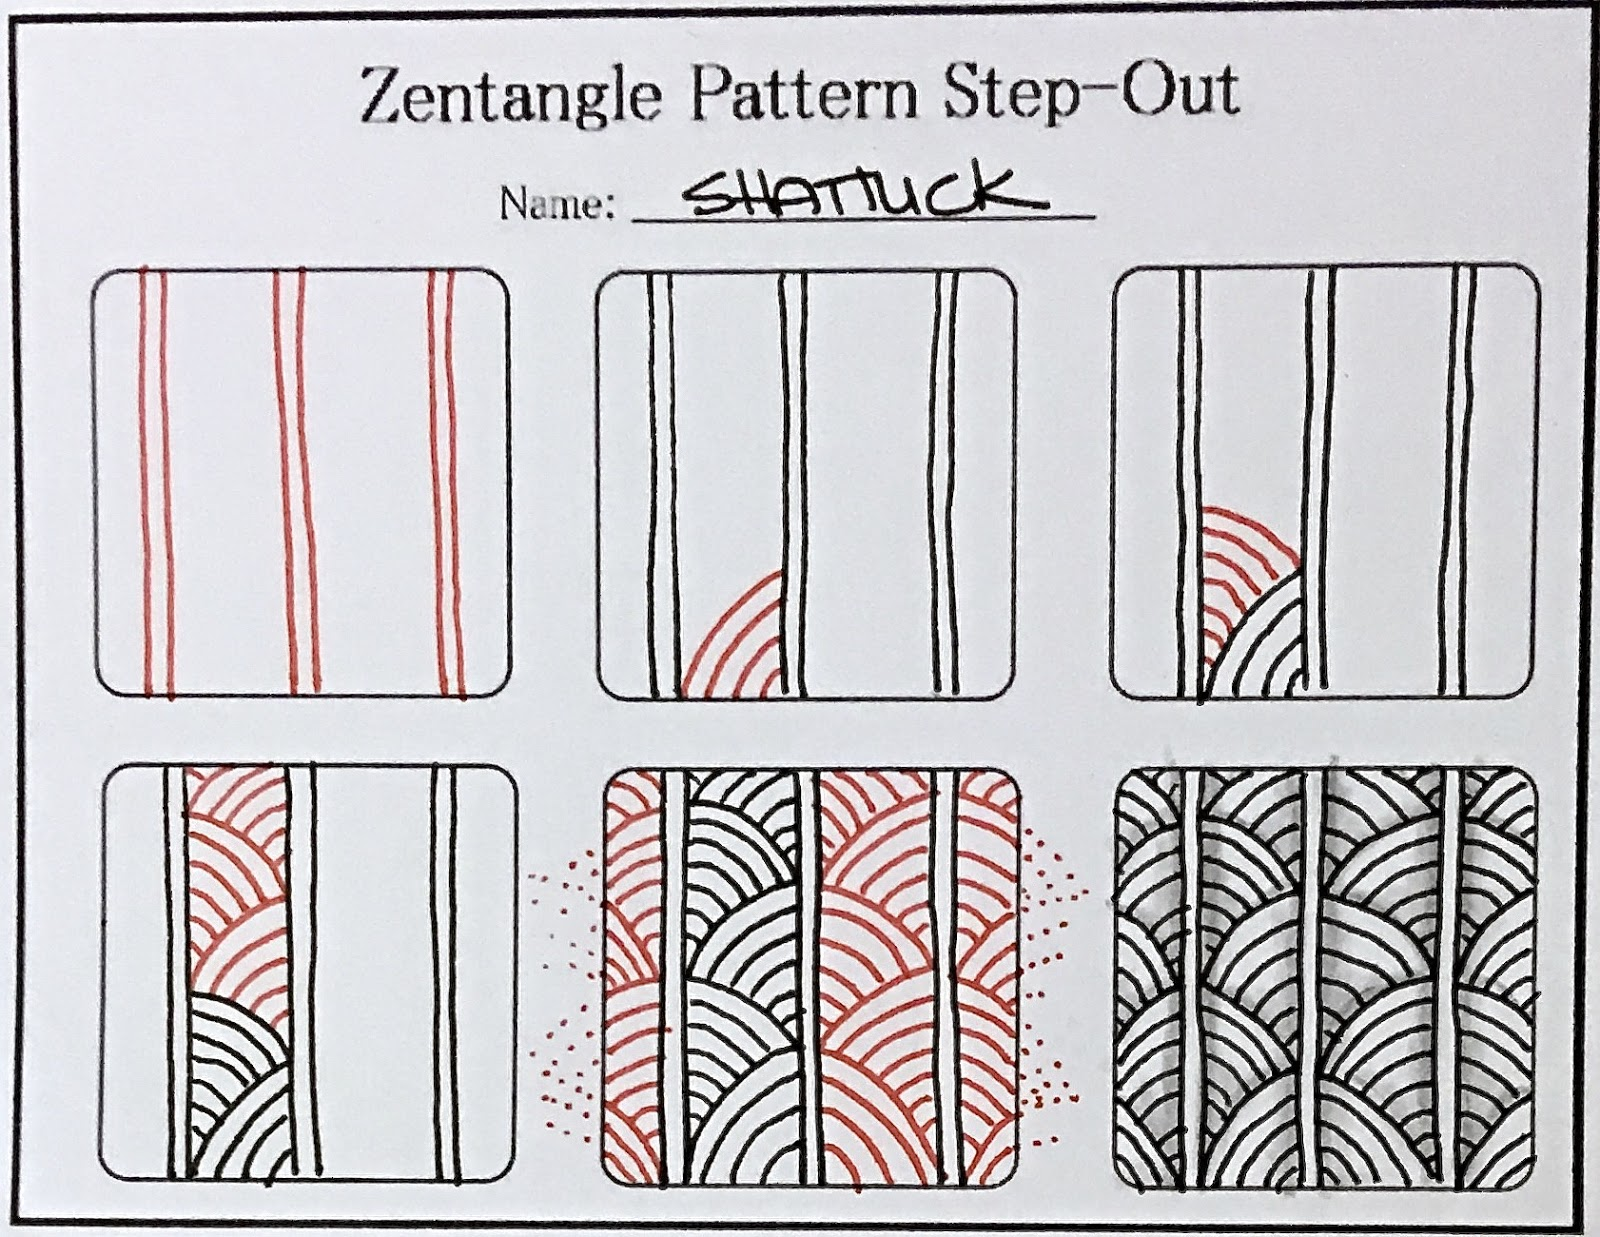 Tutorial how to draw the zentangle pattern shattuck for Drawing patterns for beginners